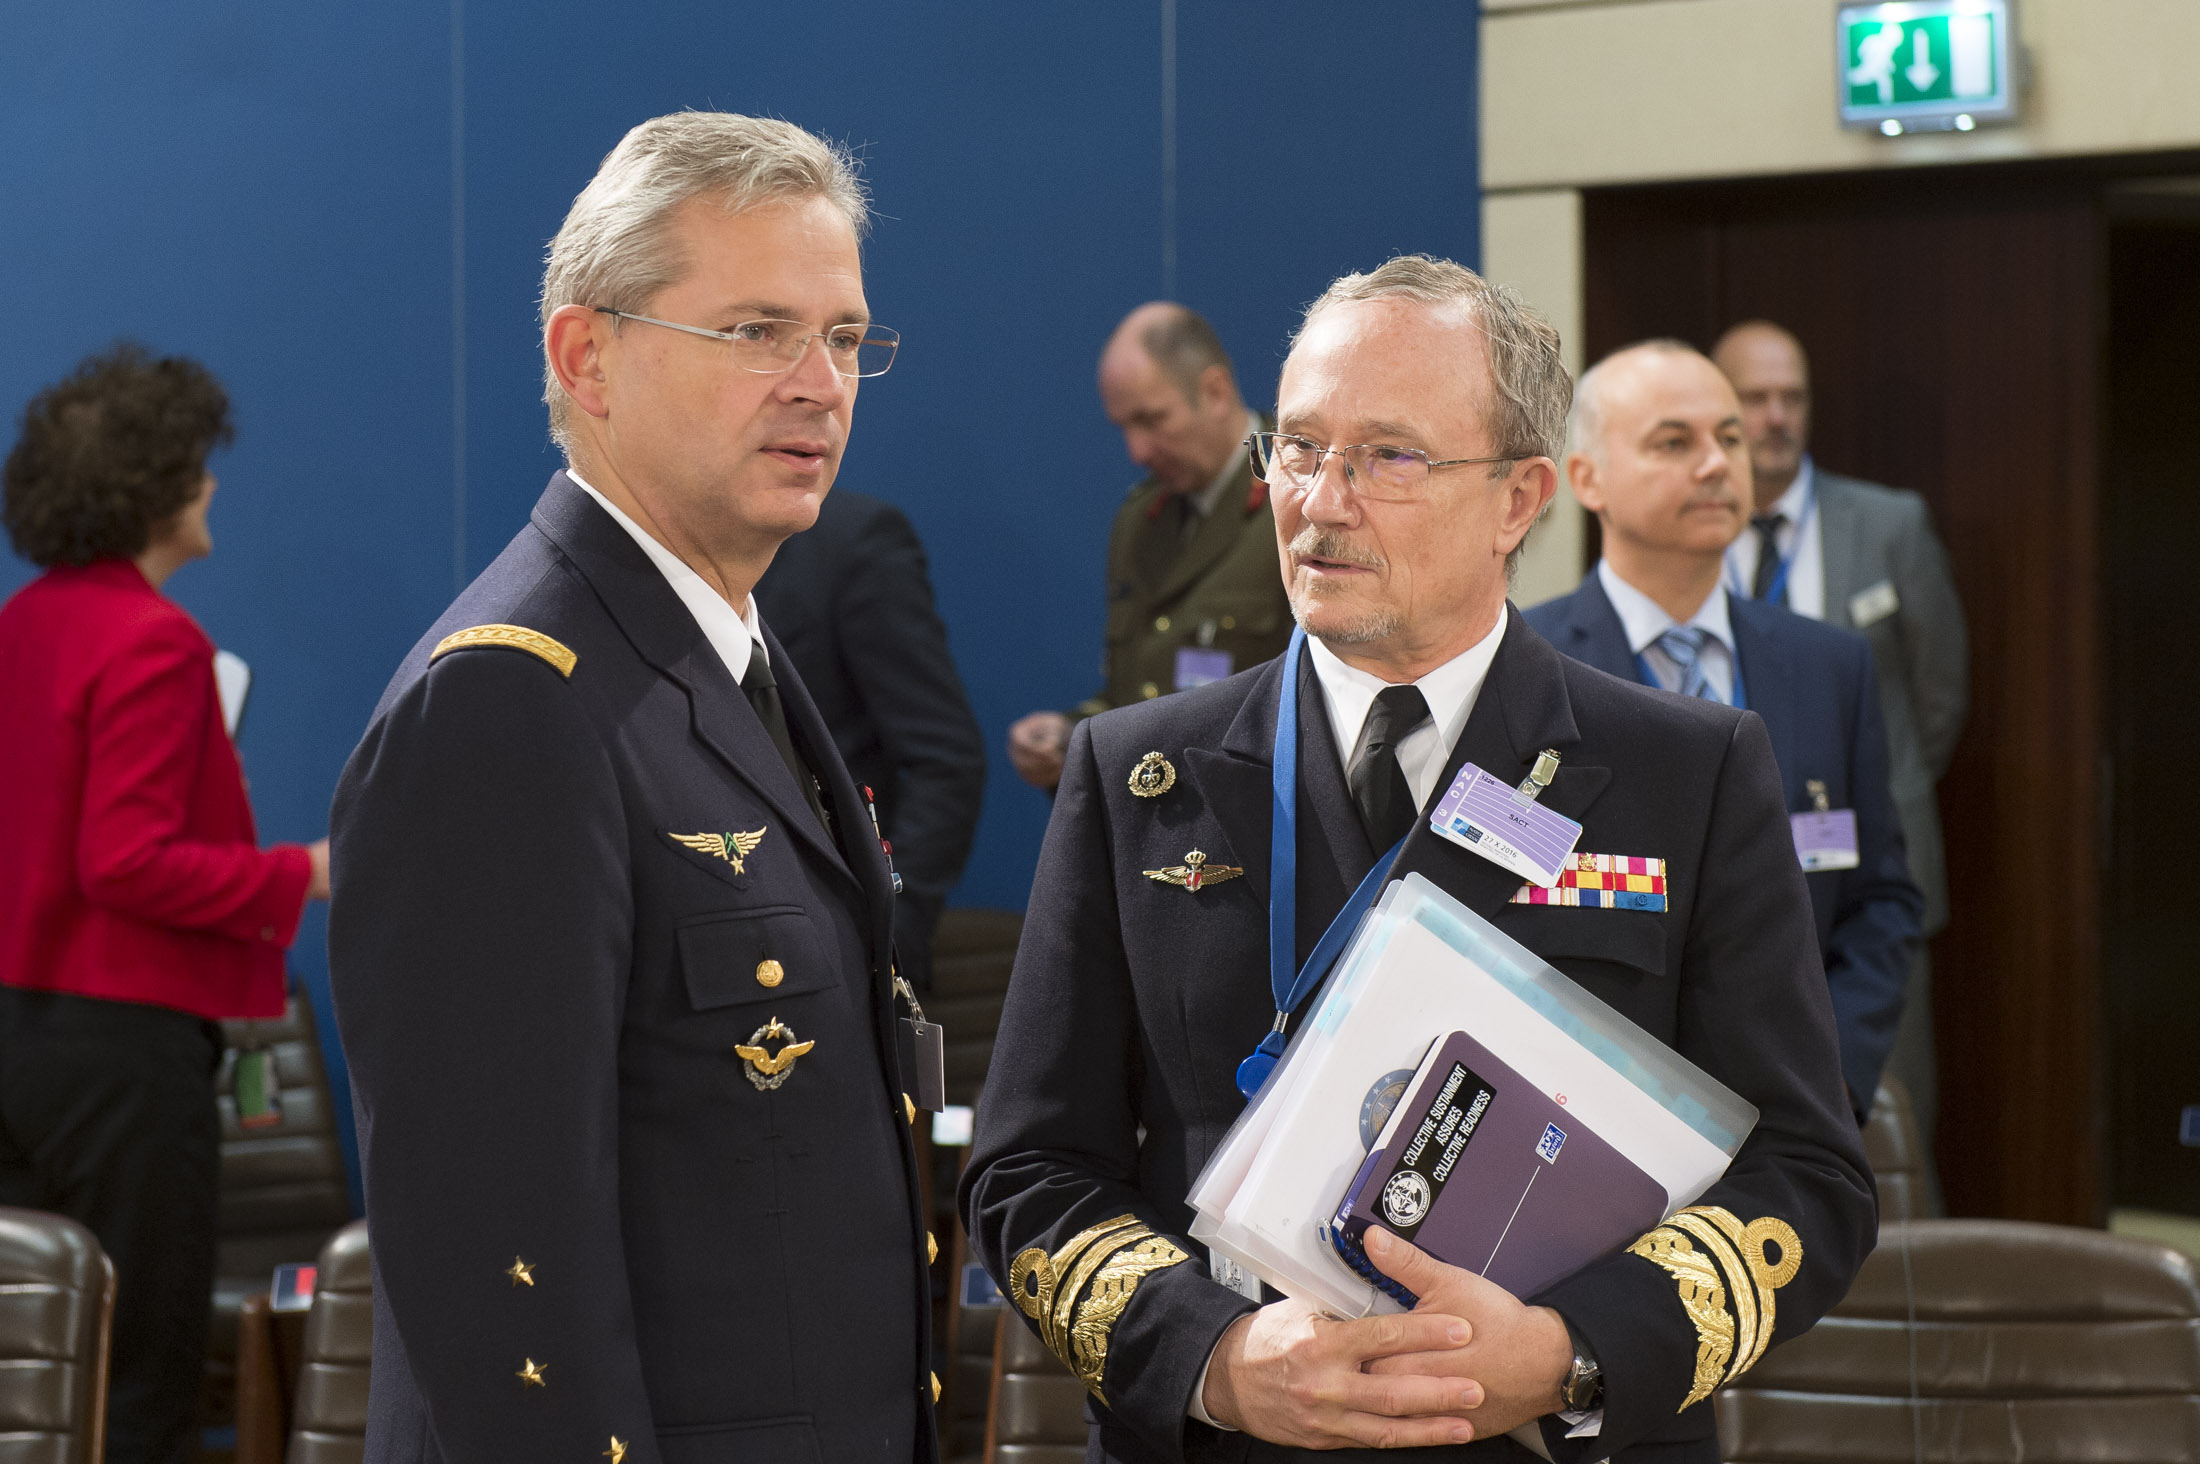 NATO's Allied Command Transformation at the Heart of Discussions at the Defence Ministerial Meetings